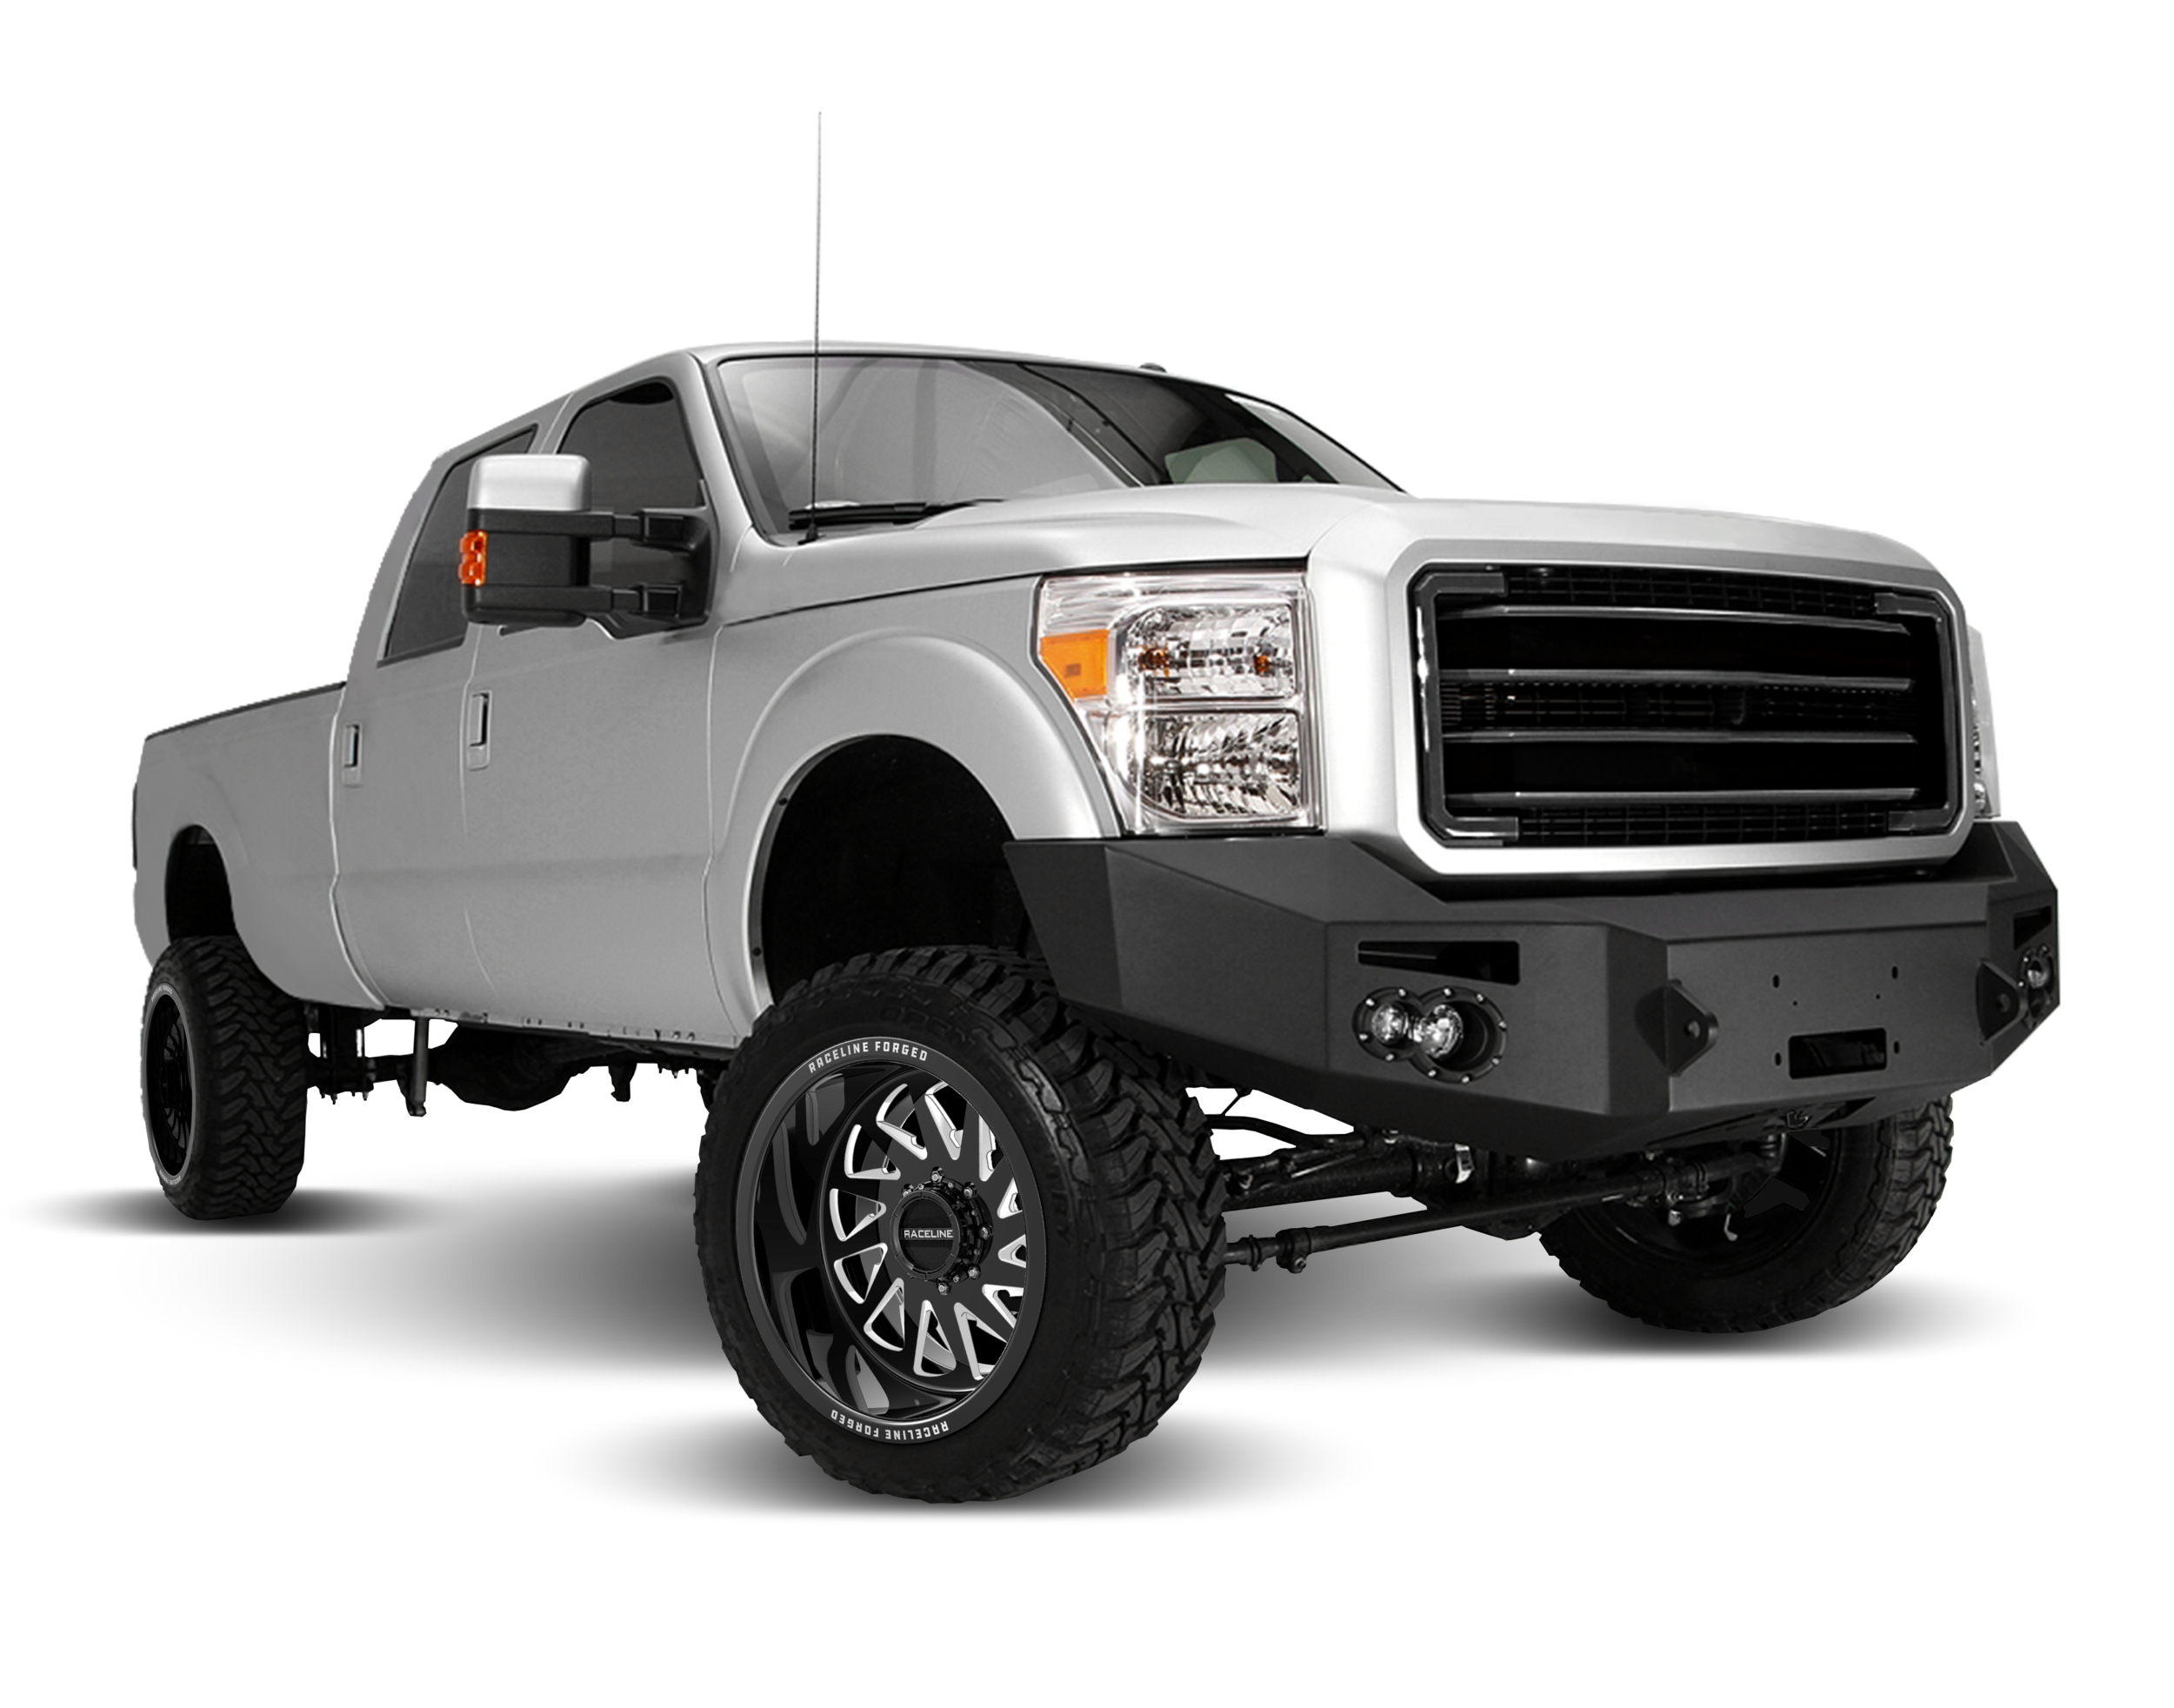 X_f-250 lifted.png